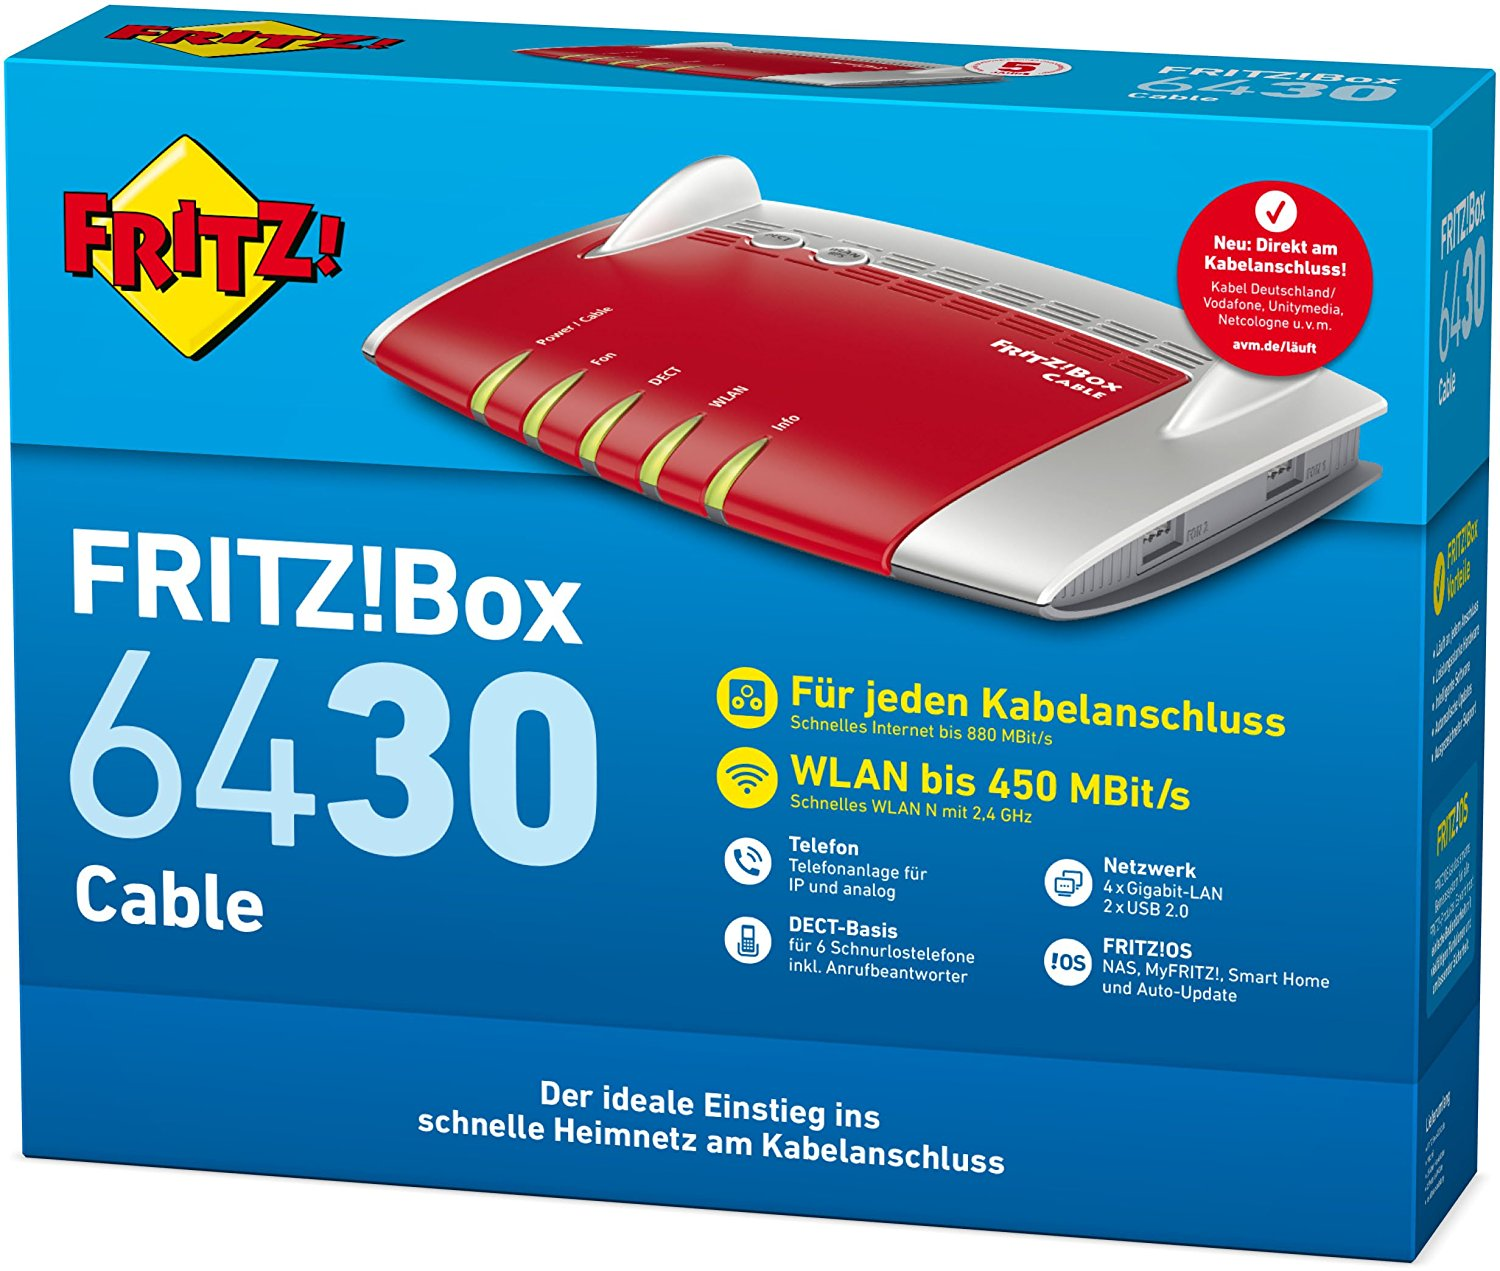 AVM FRITZ!Box 6430 Cable Kabel-WLAN-Router